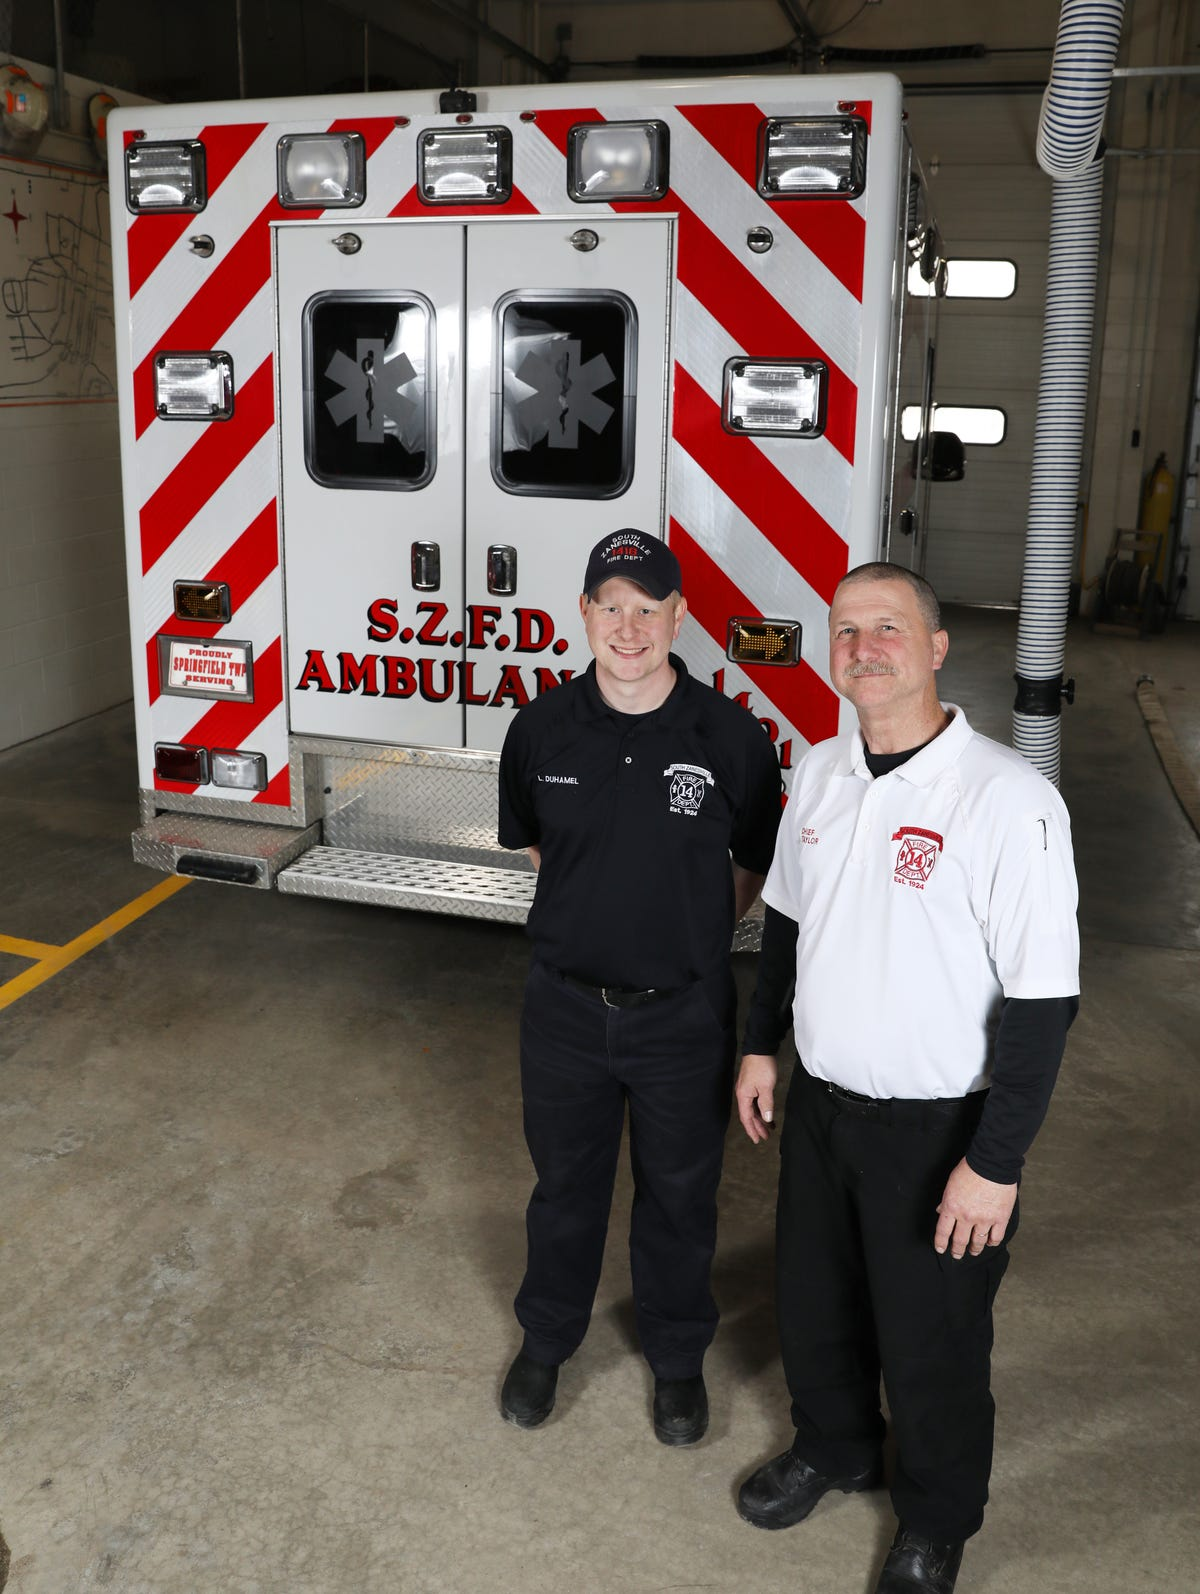 Answering the call in South Zanesville